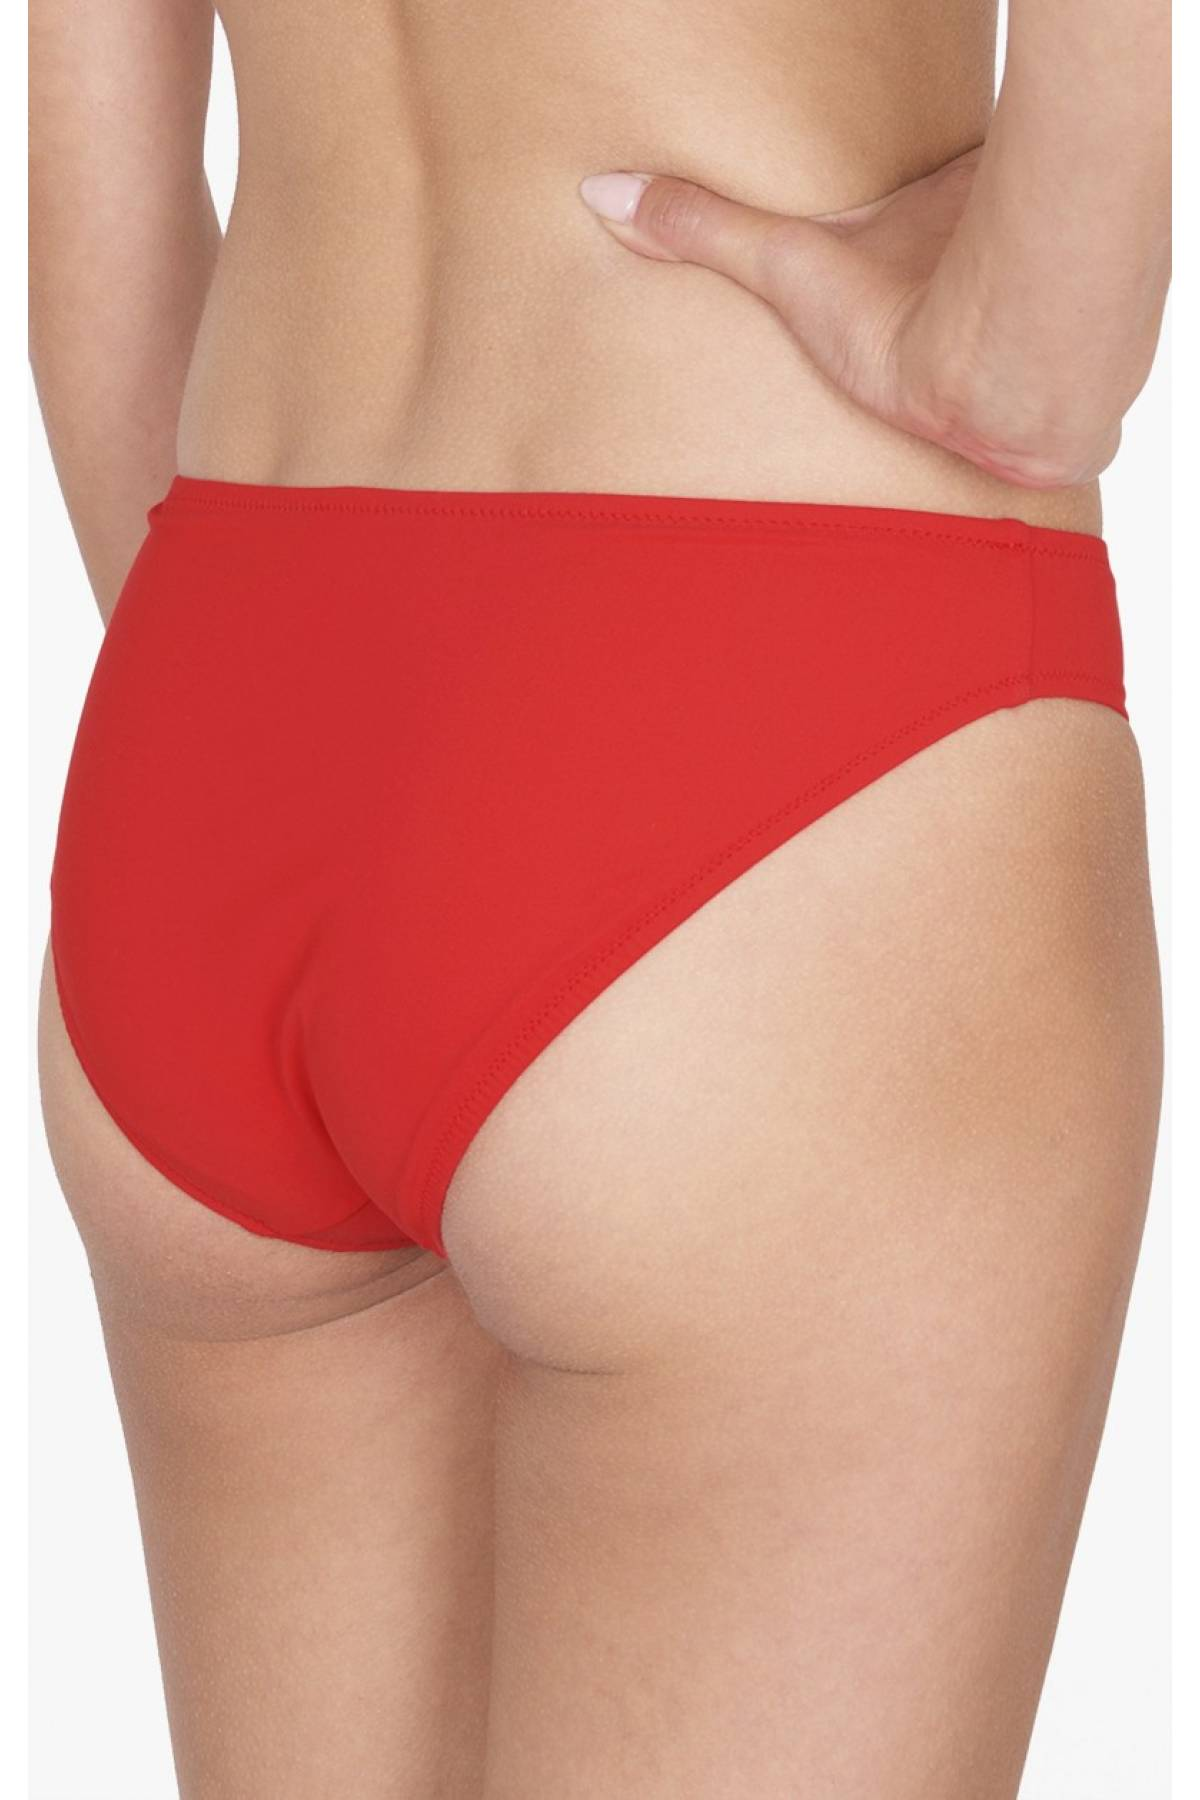 Shan Shan Bright Like A Diamon medium rise bikini bottom